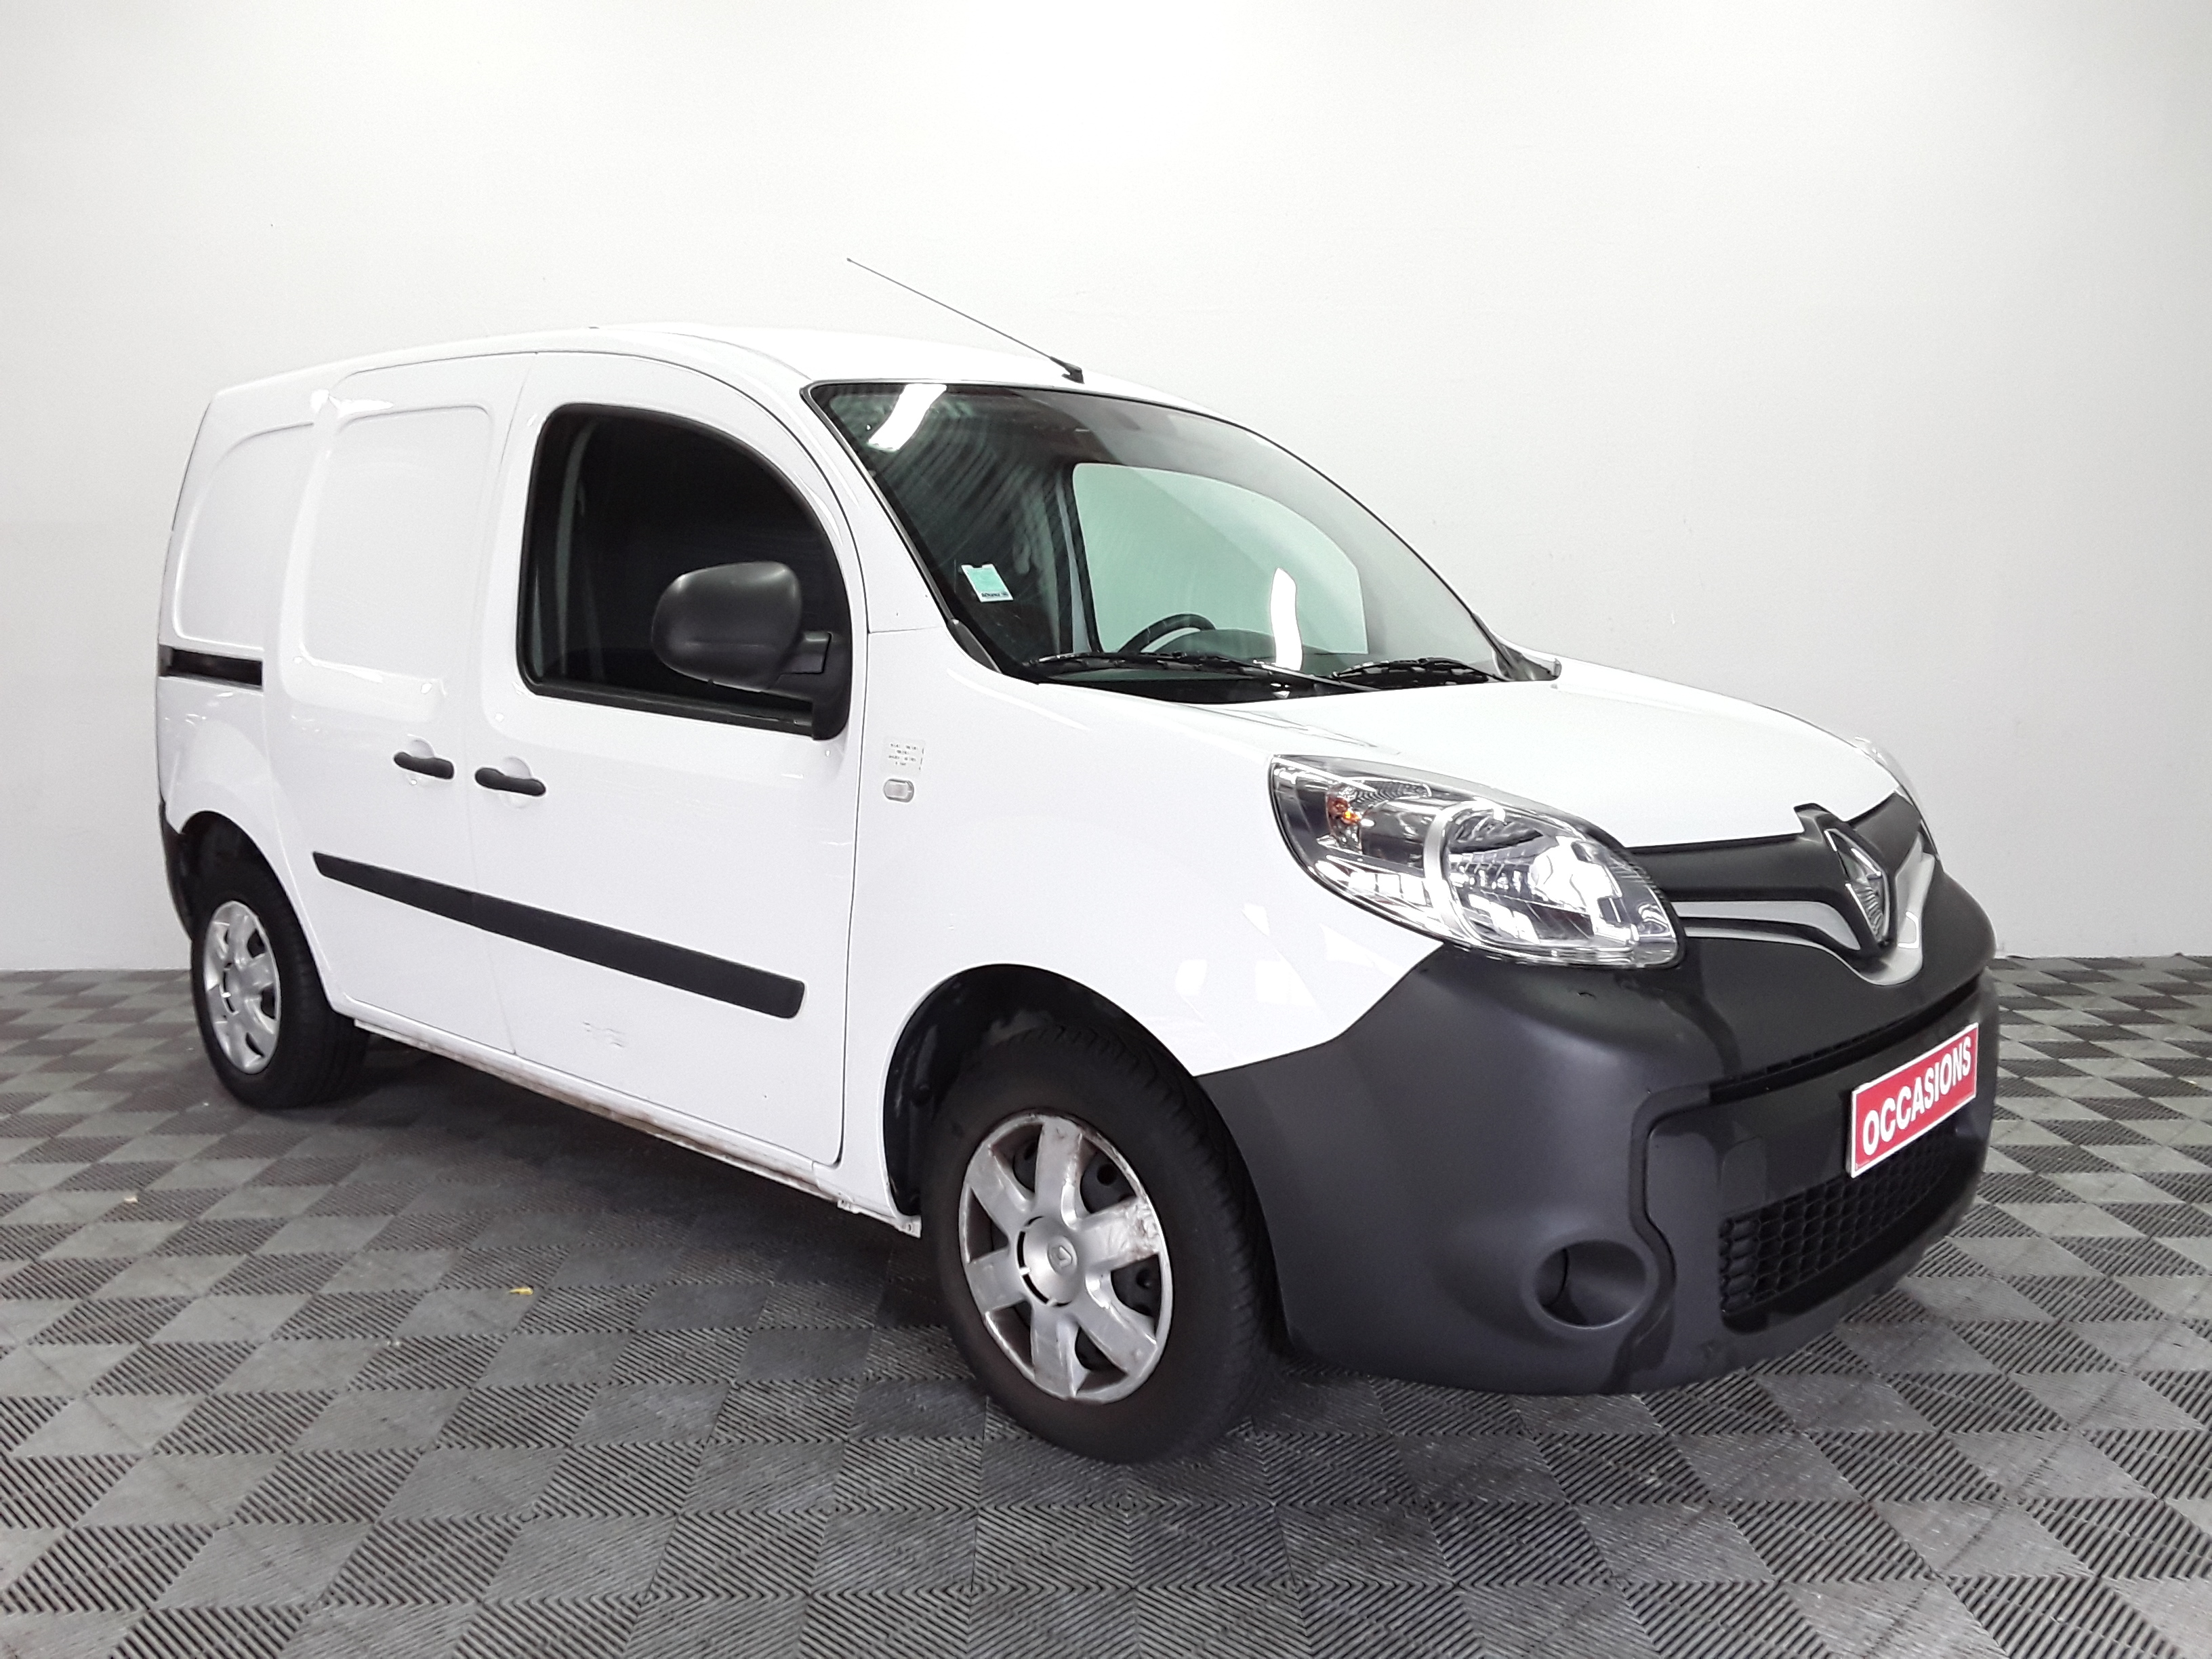 RENAULT KANGOO EXPRESS 2015 à 7400 € - Photo n°2